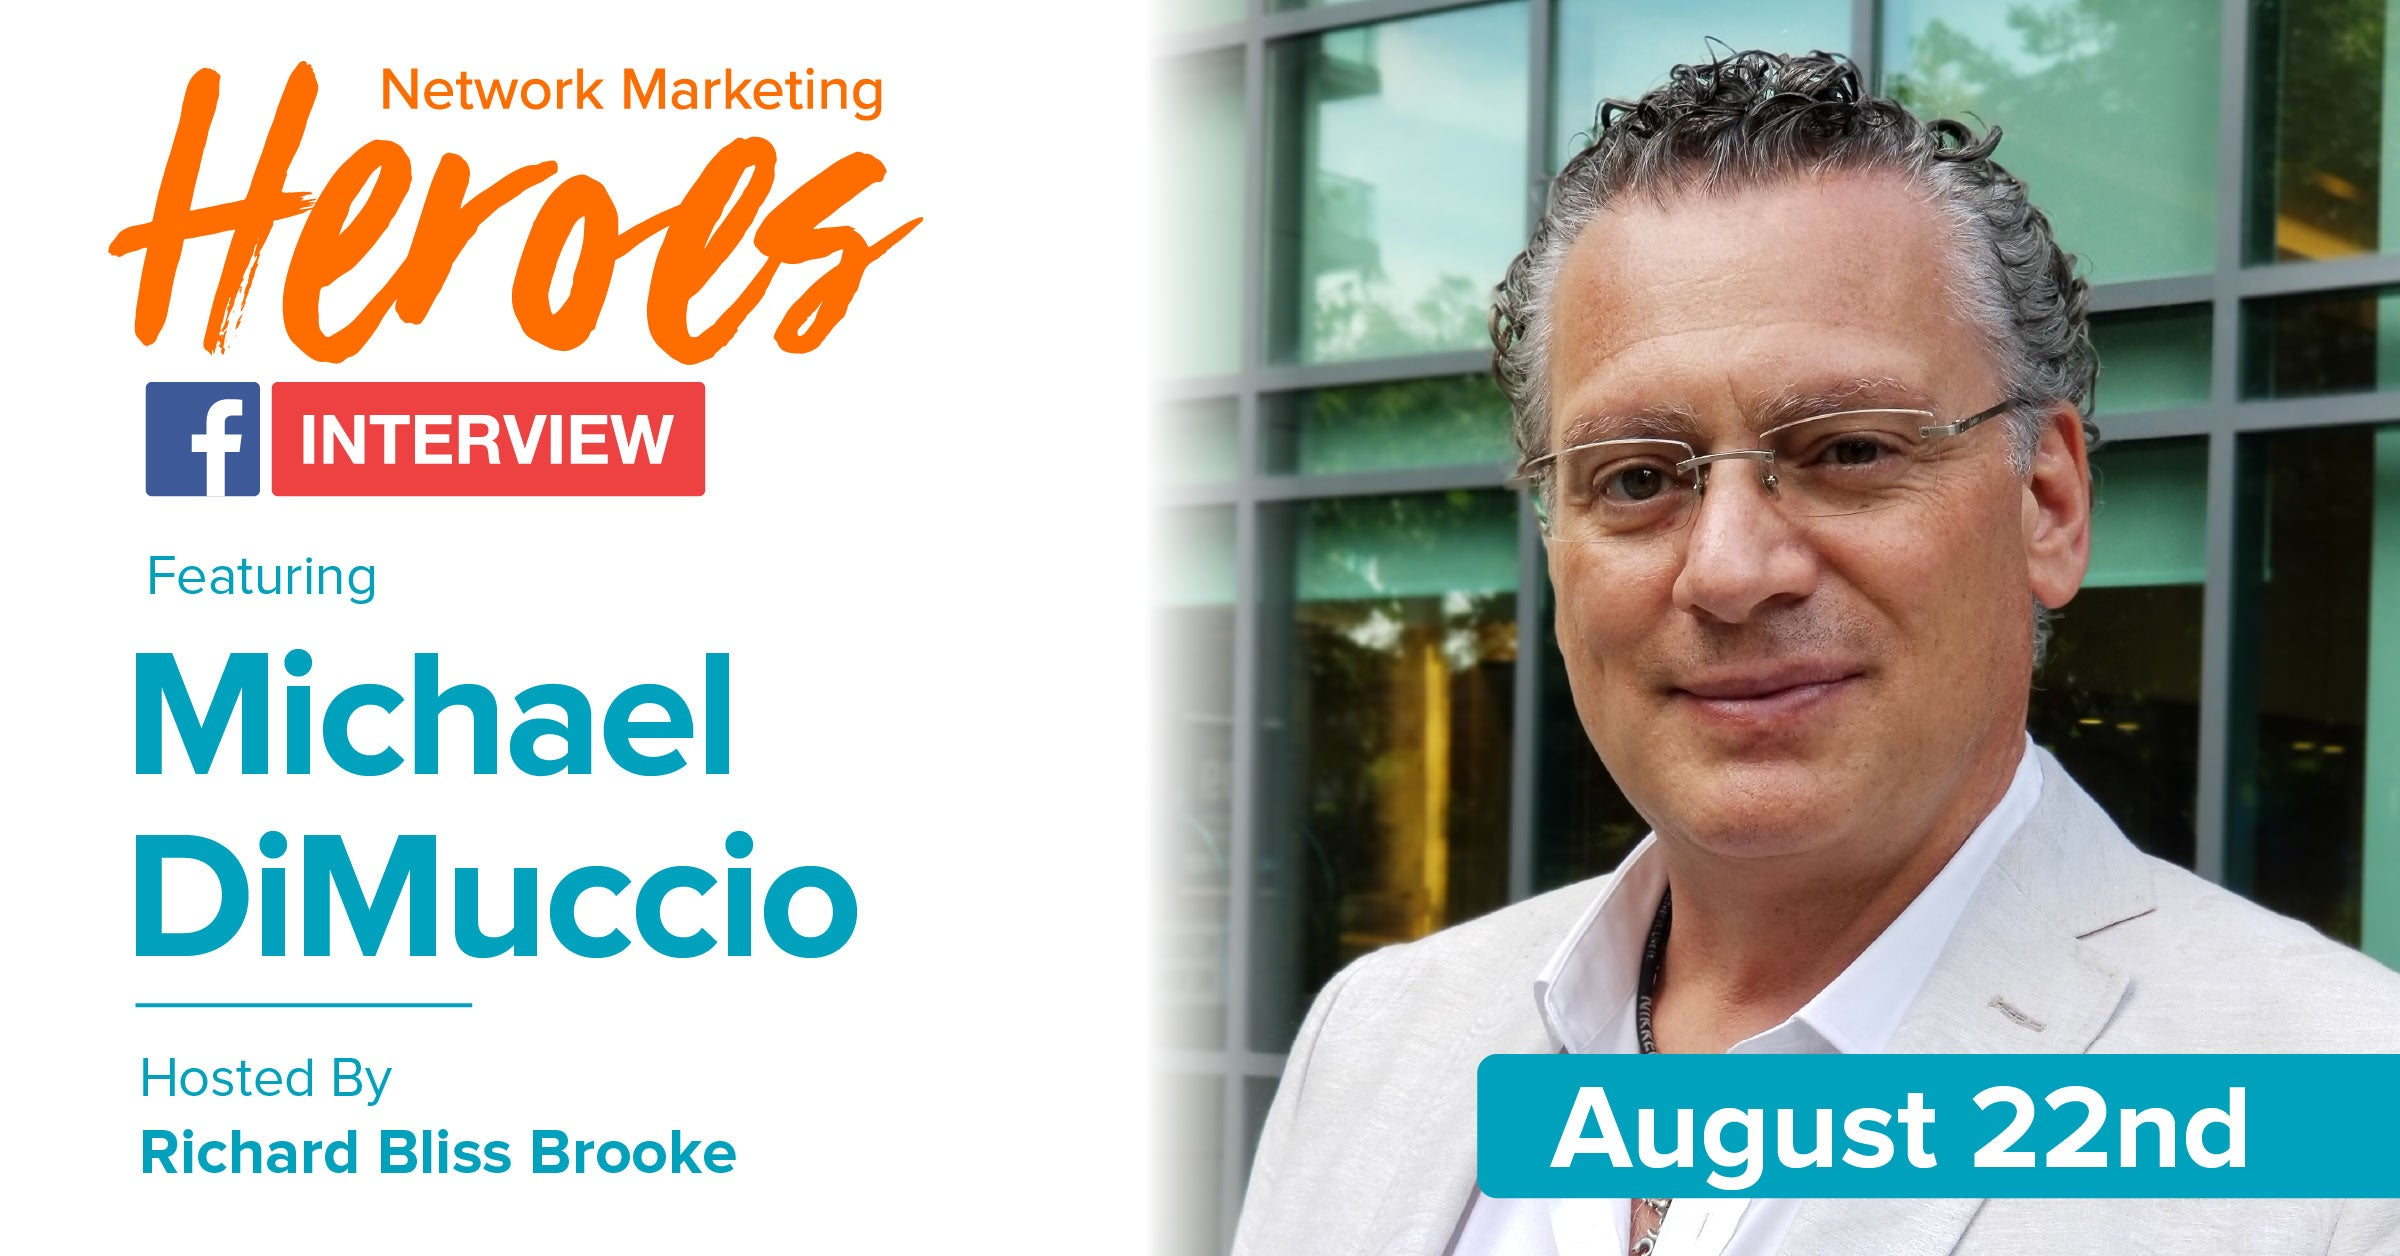 Michael DiMuccio - MLM tools, training and tips with Richard Bliss Brooke Bliss Business Network Marketing Heroes Call